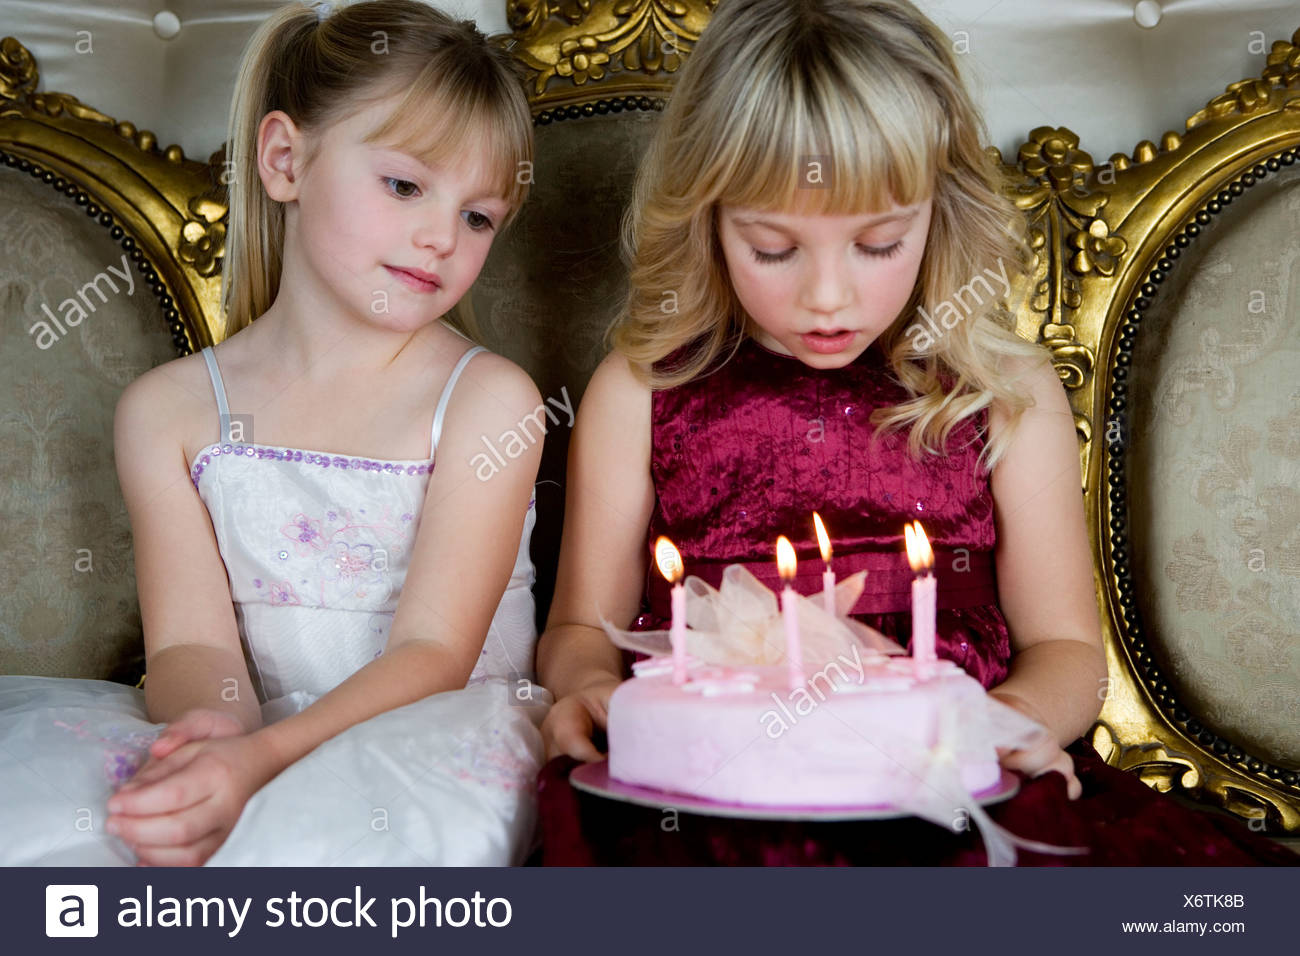 Little girl and friend holding a birthday cake with lit candles Stock Photo